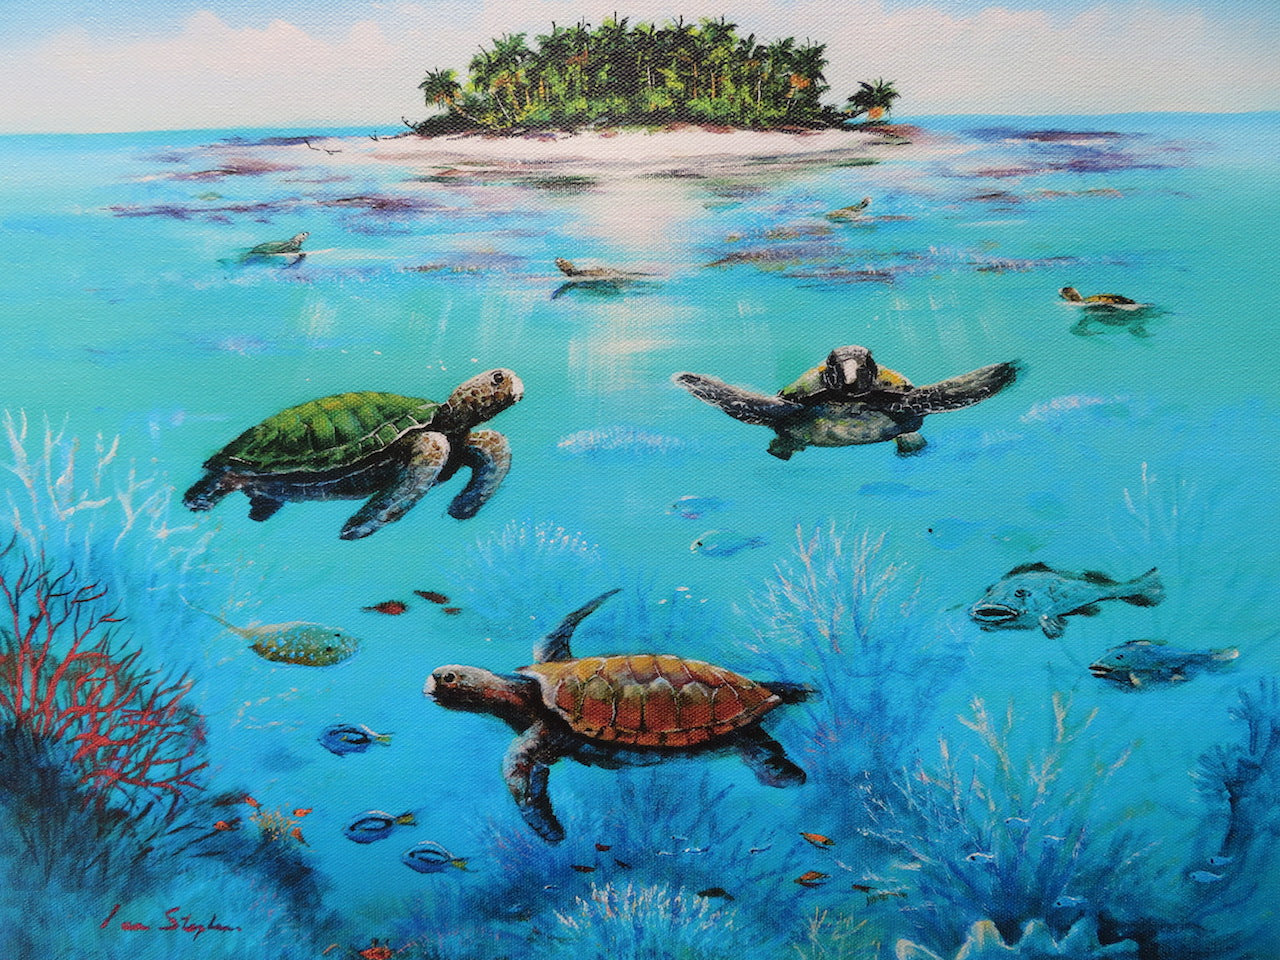 Turtles on the Great Barrier Reef